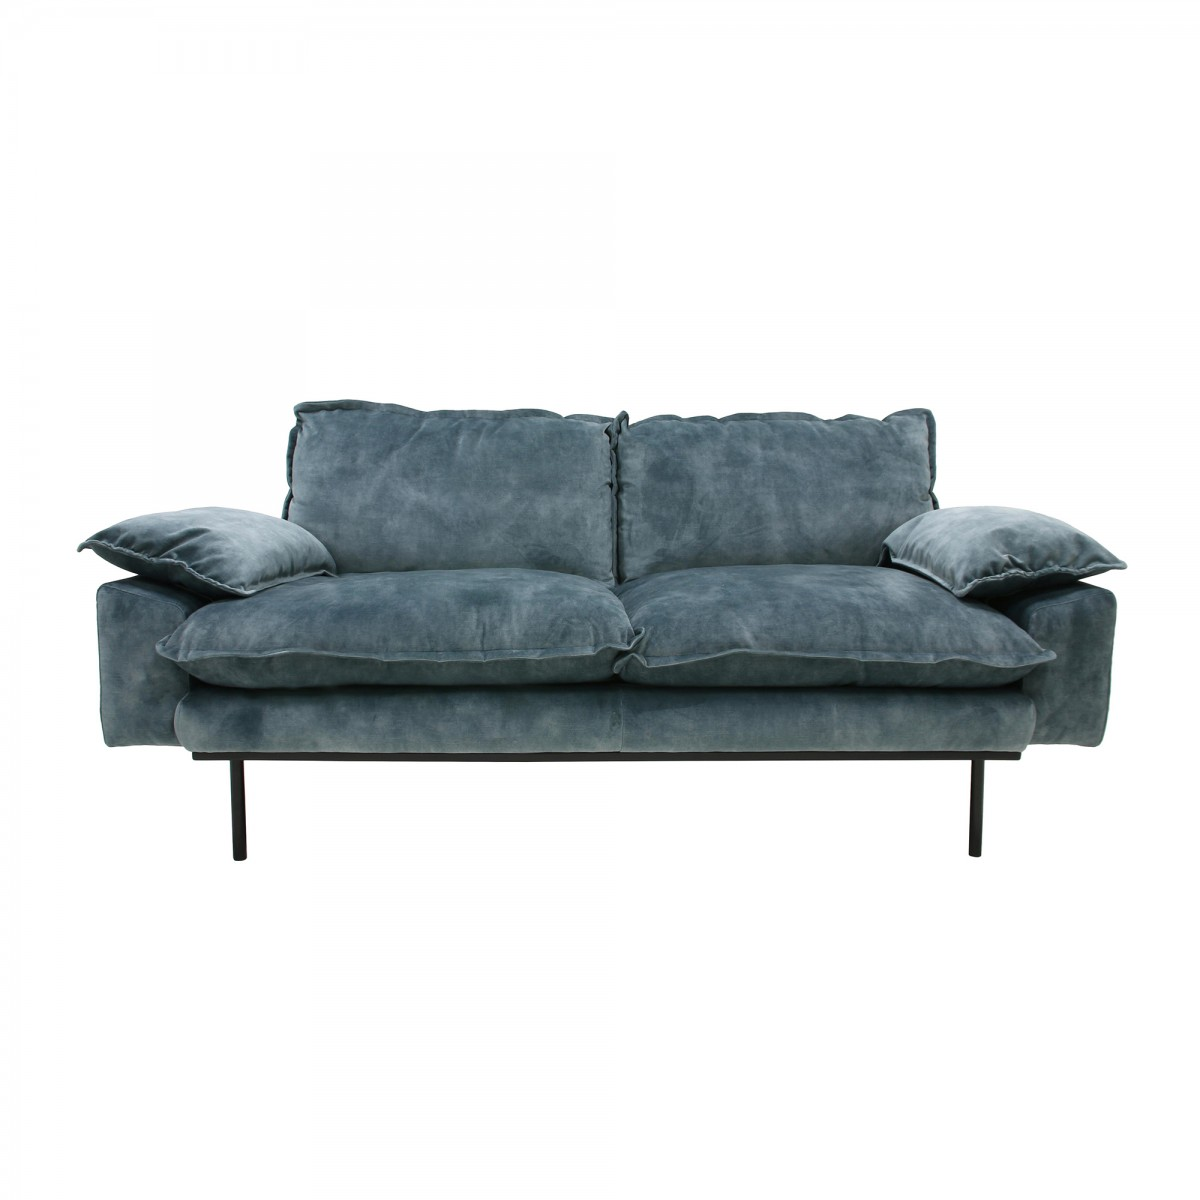 Retro 2 Seater Velvet Sofa Petrol Hk Living